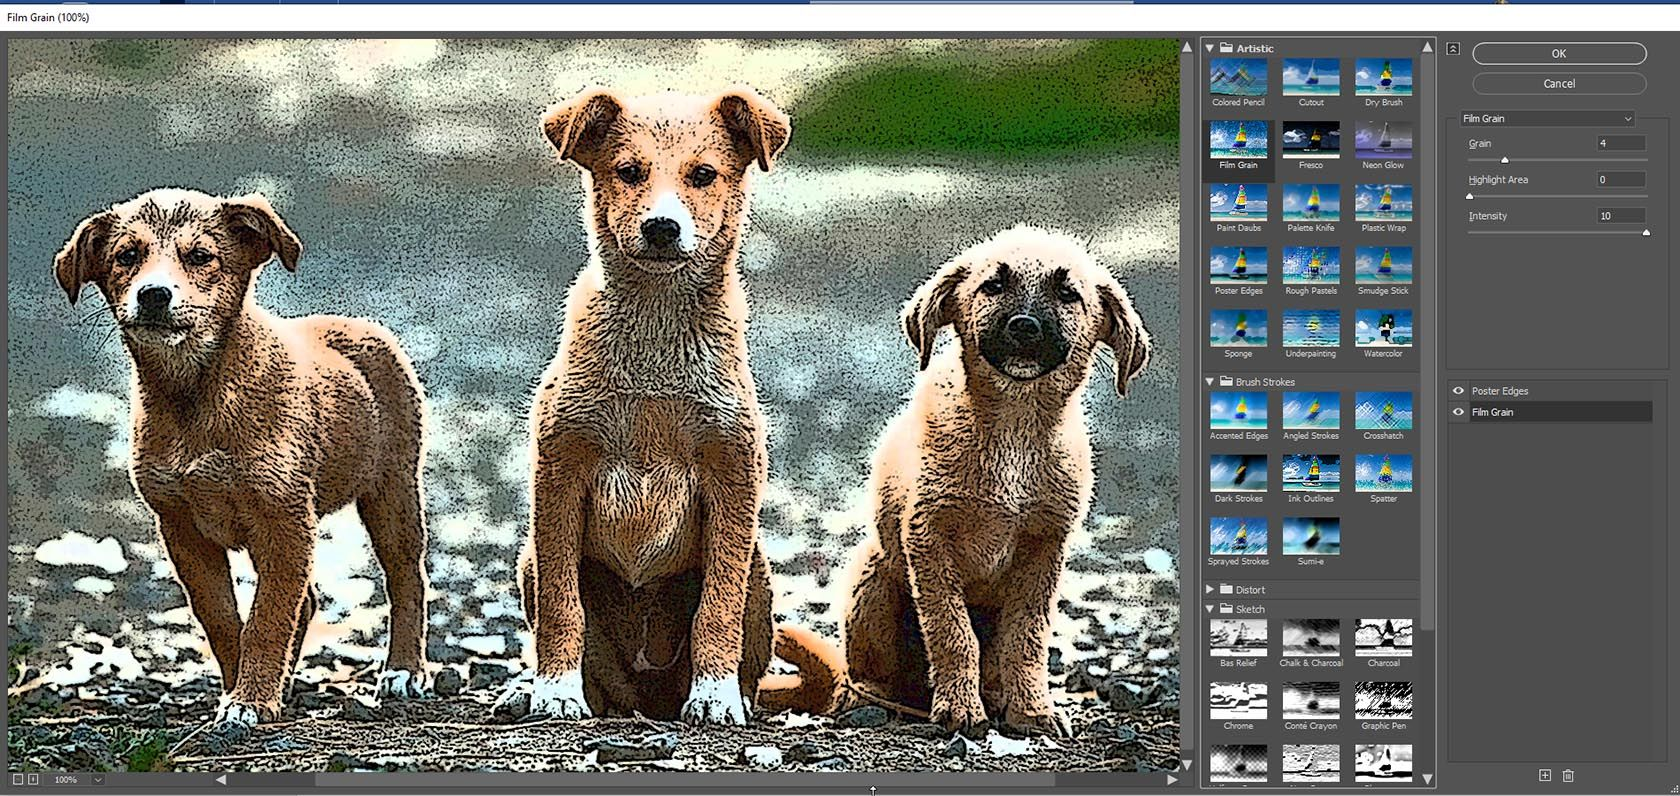 7 Ways to Convert Your Photos Into Art Using Photoshop